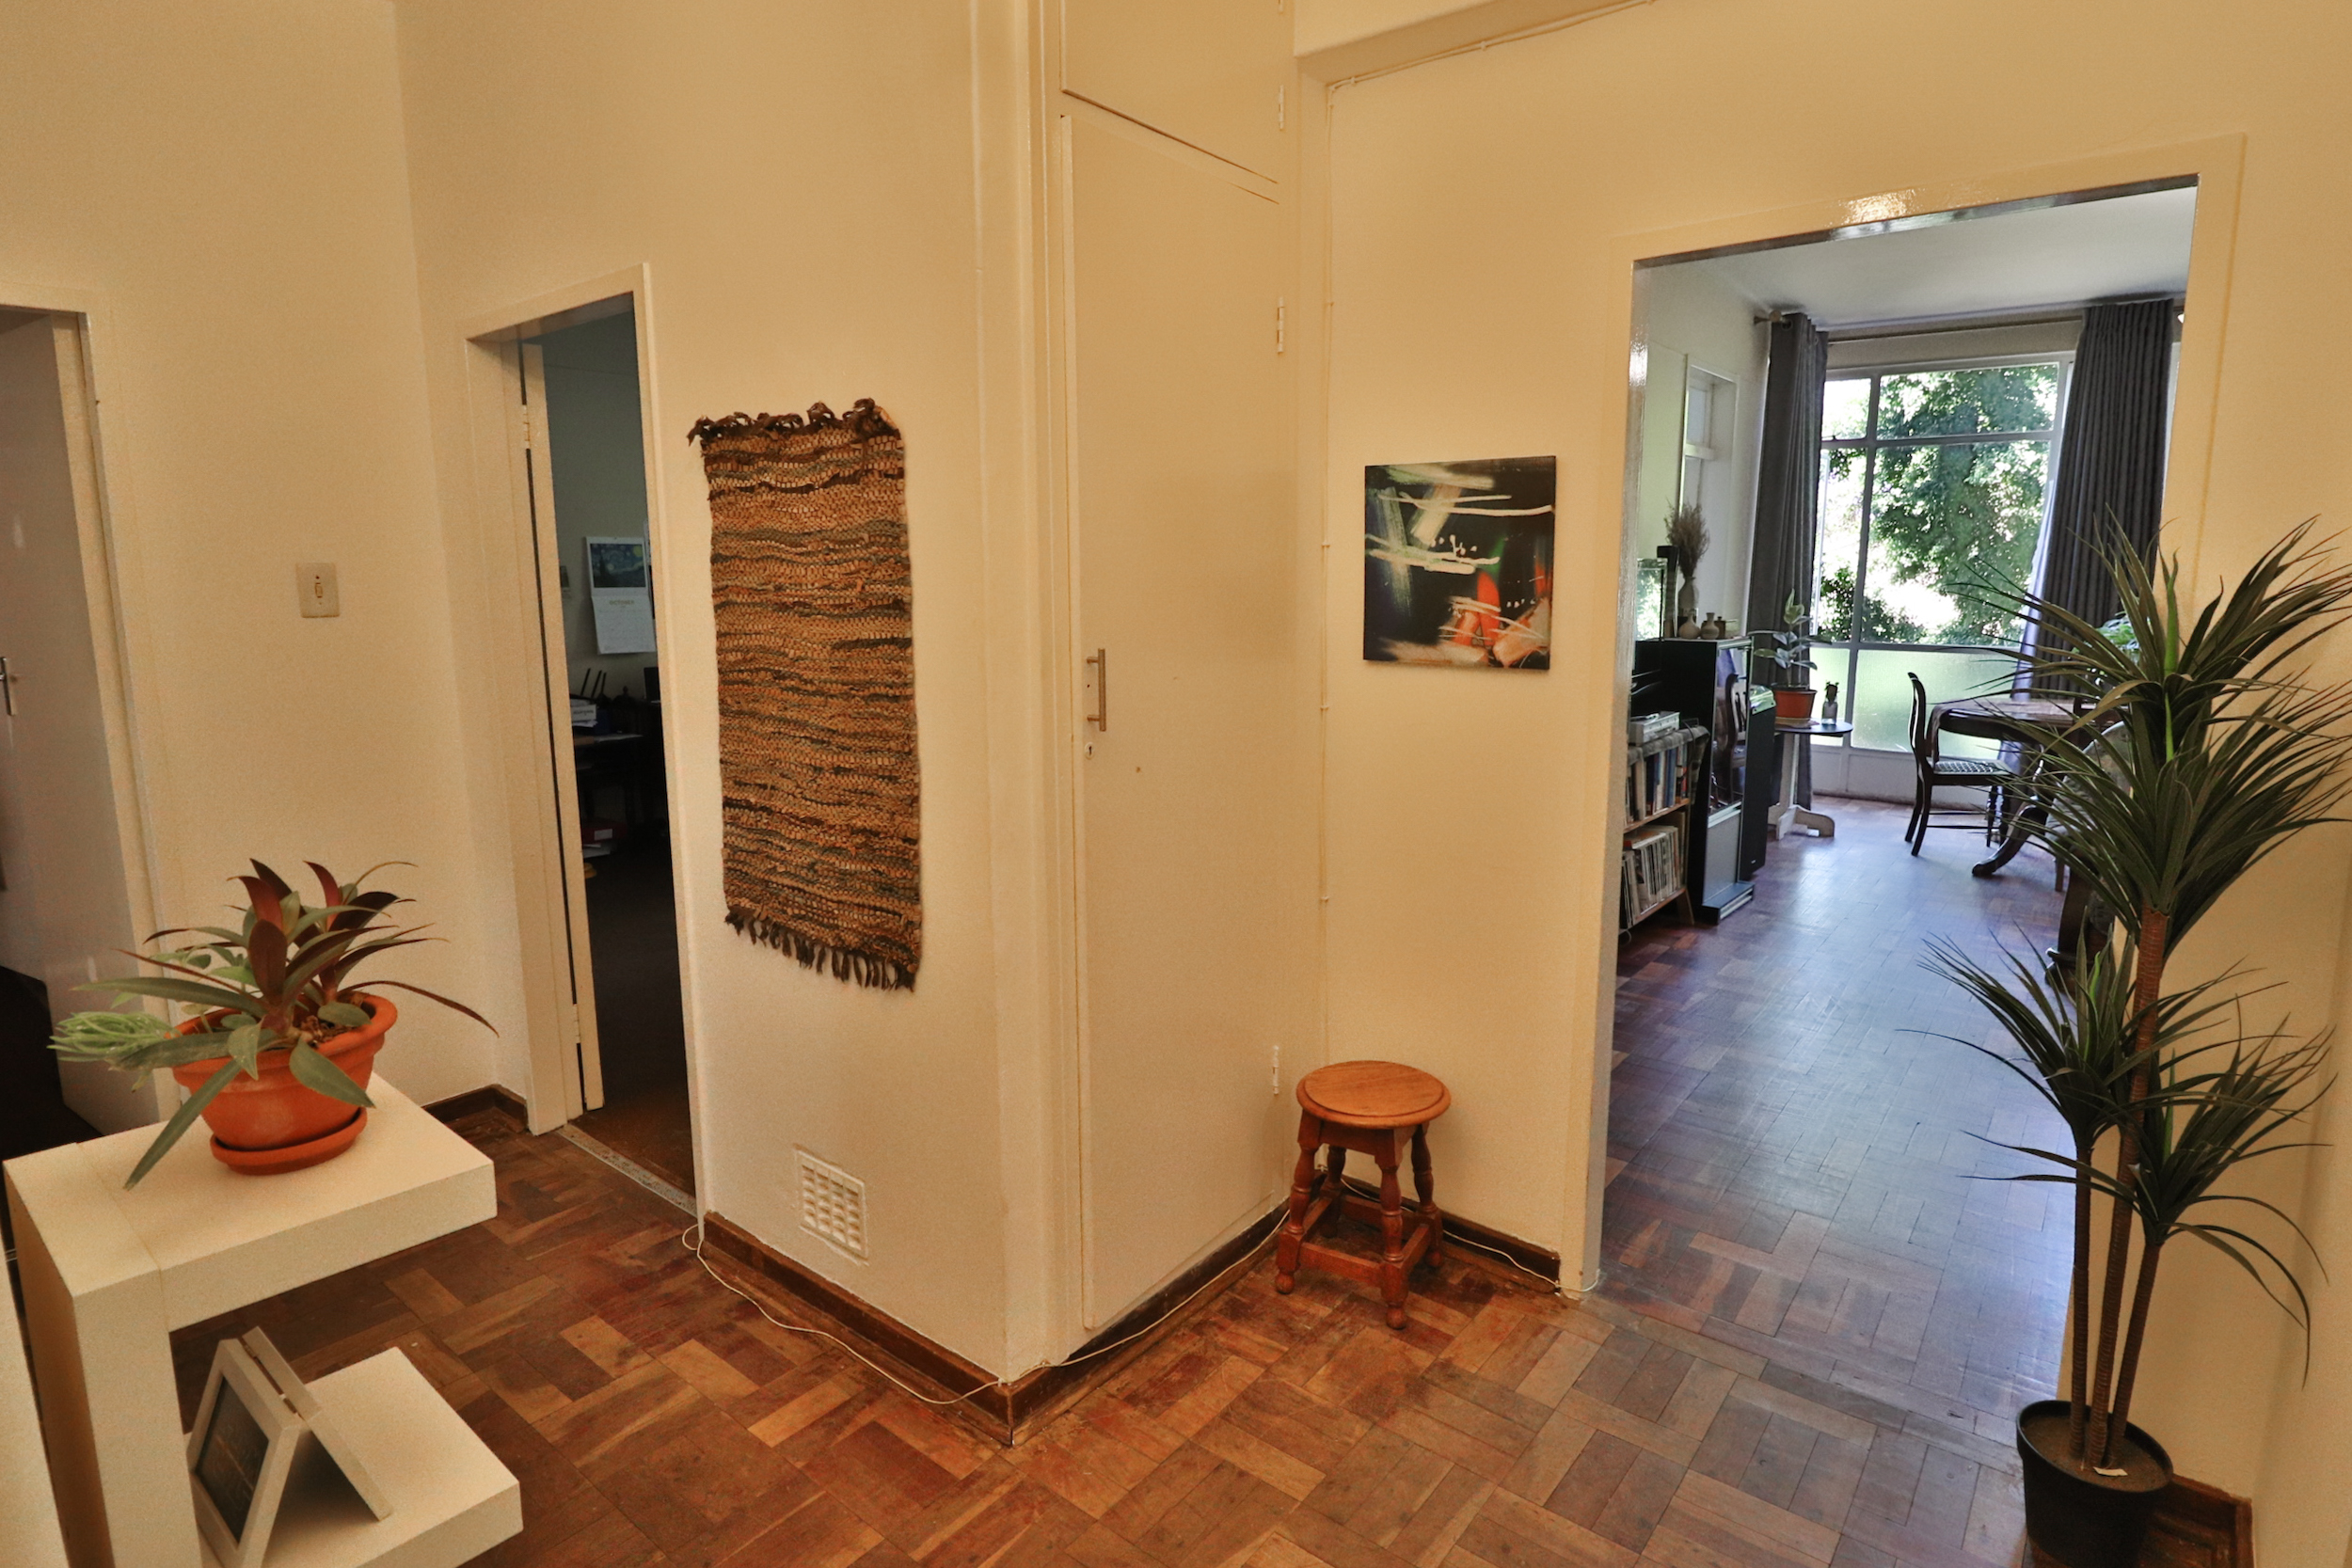 3 Bedroom Apartment For Sale in Hatfield